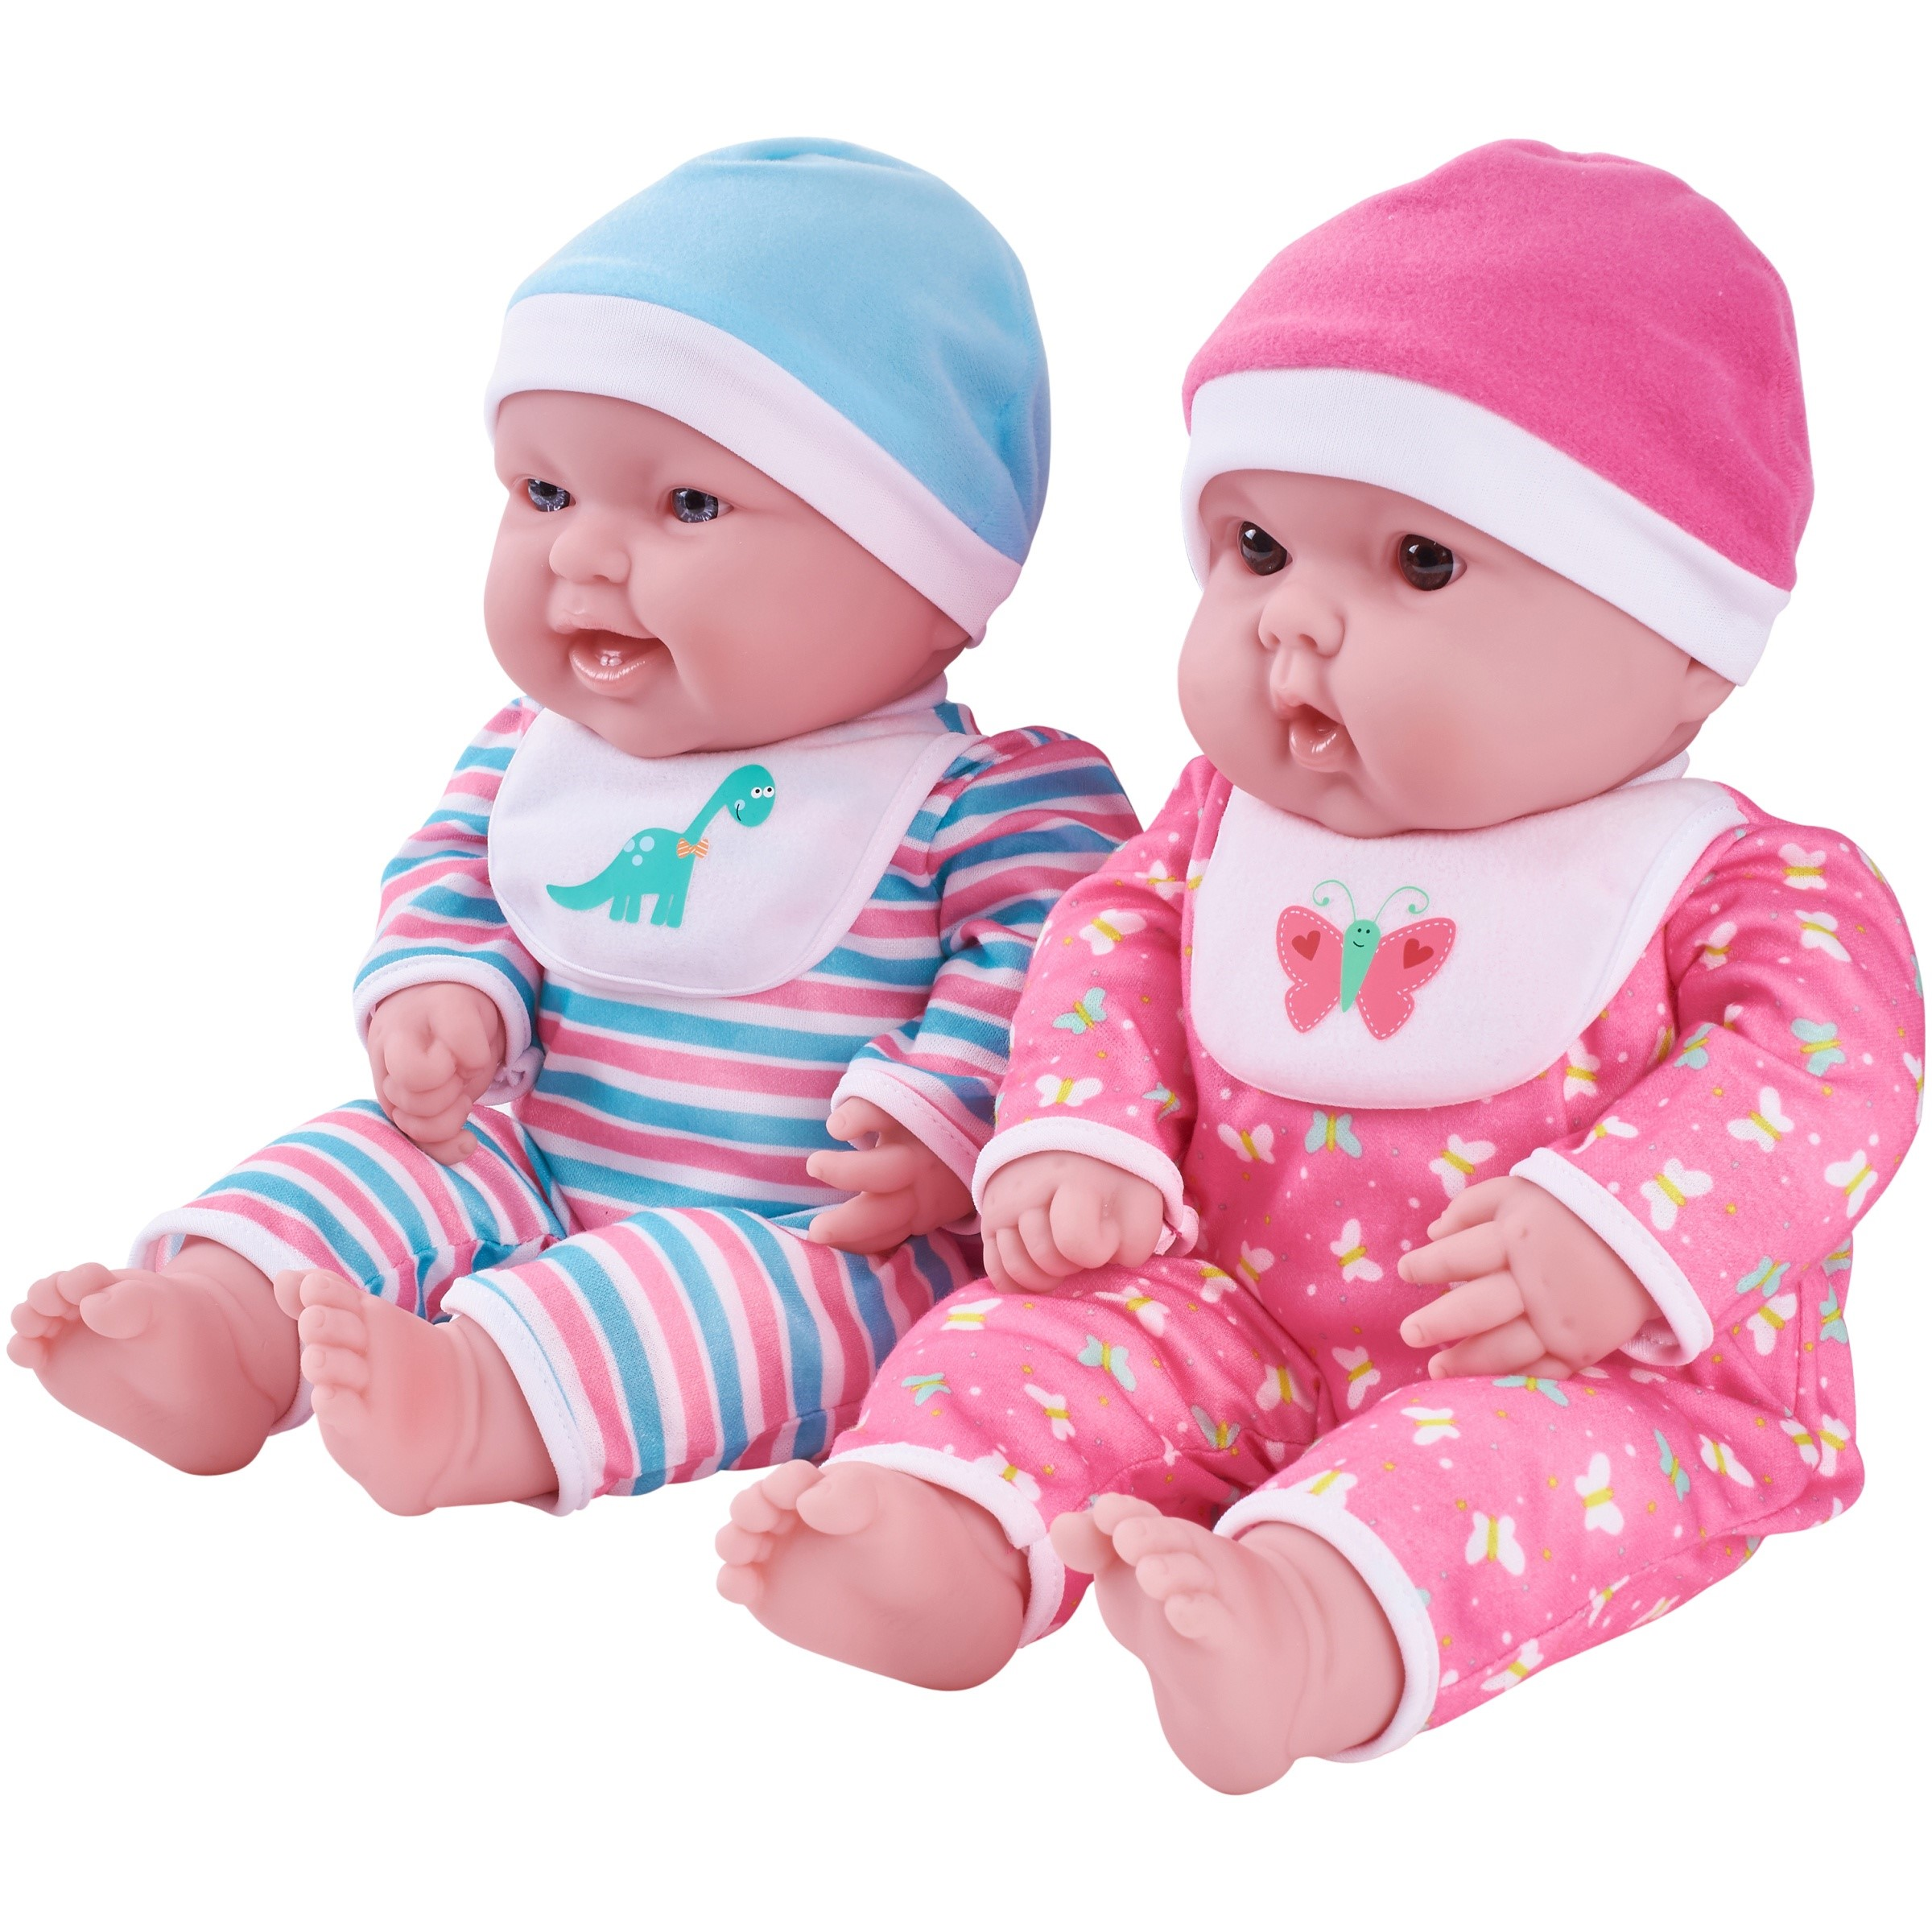 """My Sweet Love 15"""" Twin Baby Dolls with Coordinating Outfits"""